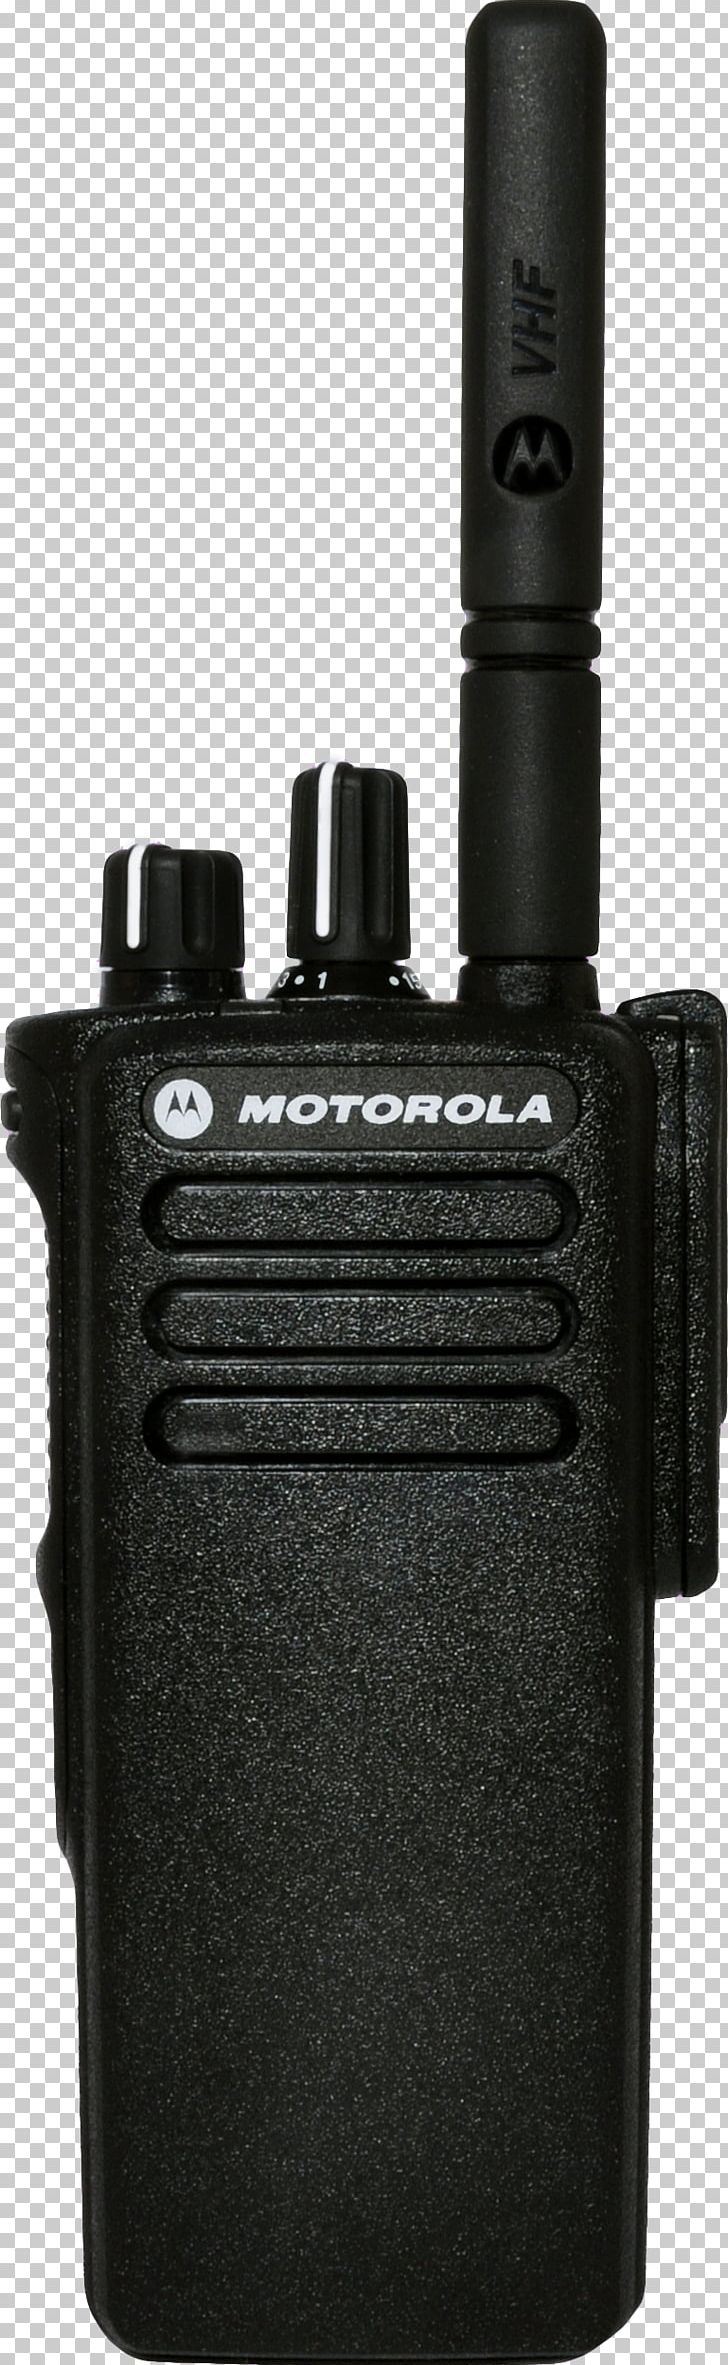 Two-way Radio Ultra High Frequency Very High Frequency Motorola PNG, Clipart, Aerials, Electronic Device, Marine Vhf Radio, Mobile Phones, Mobile Radio Free PNG Download